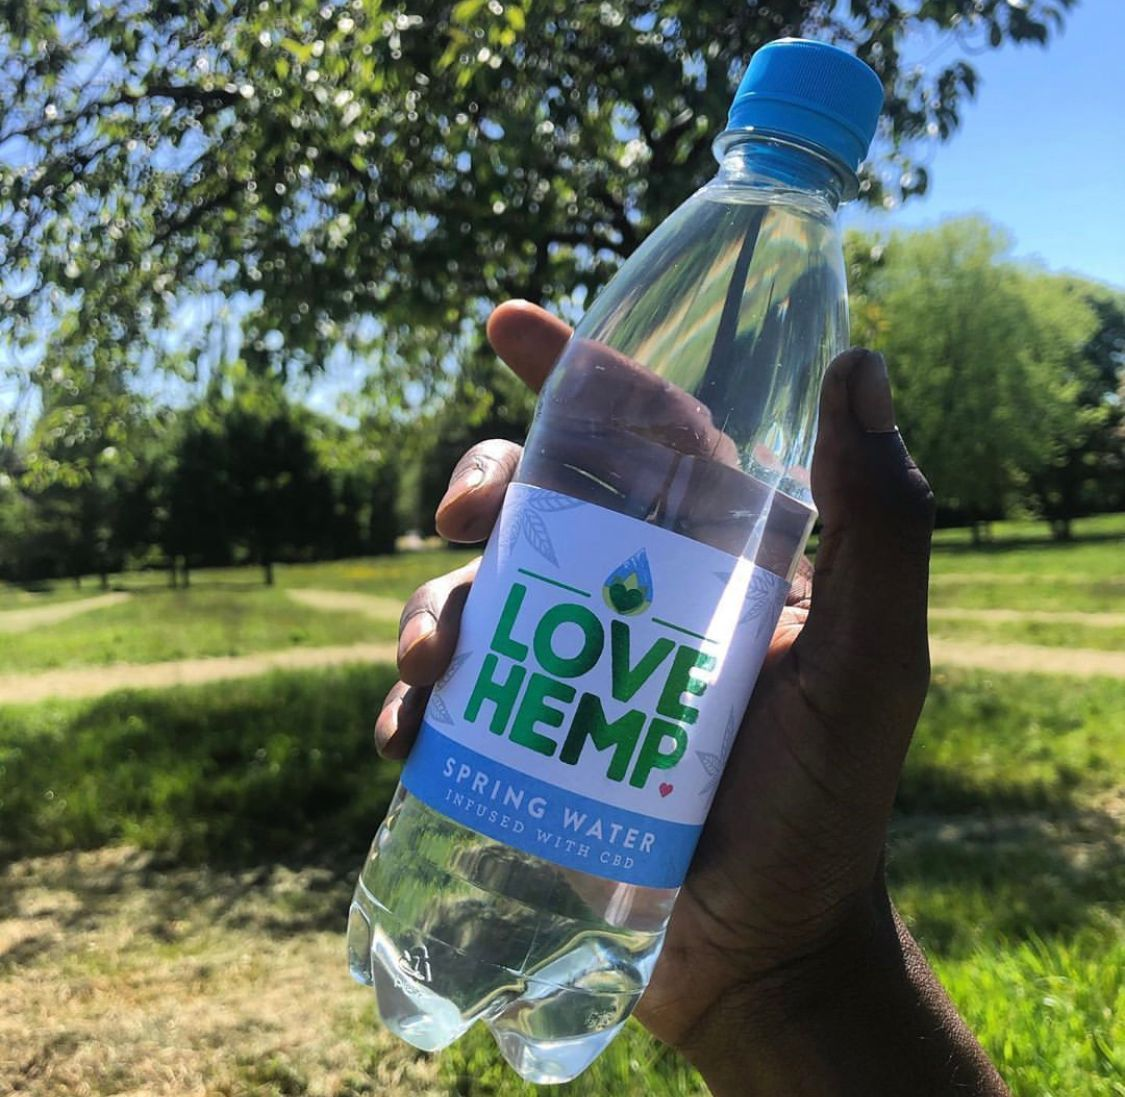 Feeling the heat this week? ☀️Stay hydrated with our refreshing CBD Infused Spring Water. Shop now 👉https://t.co/TjDKmt6QCO #UKHeatwave https://t.co/VznfKj7Hy0